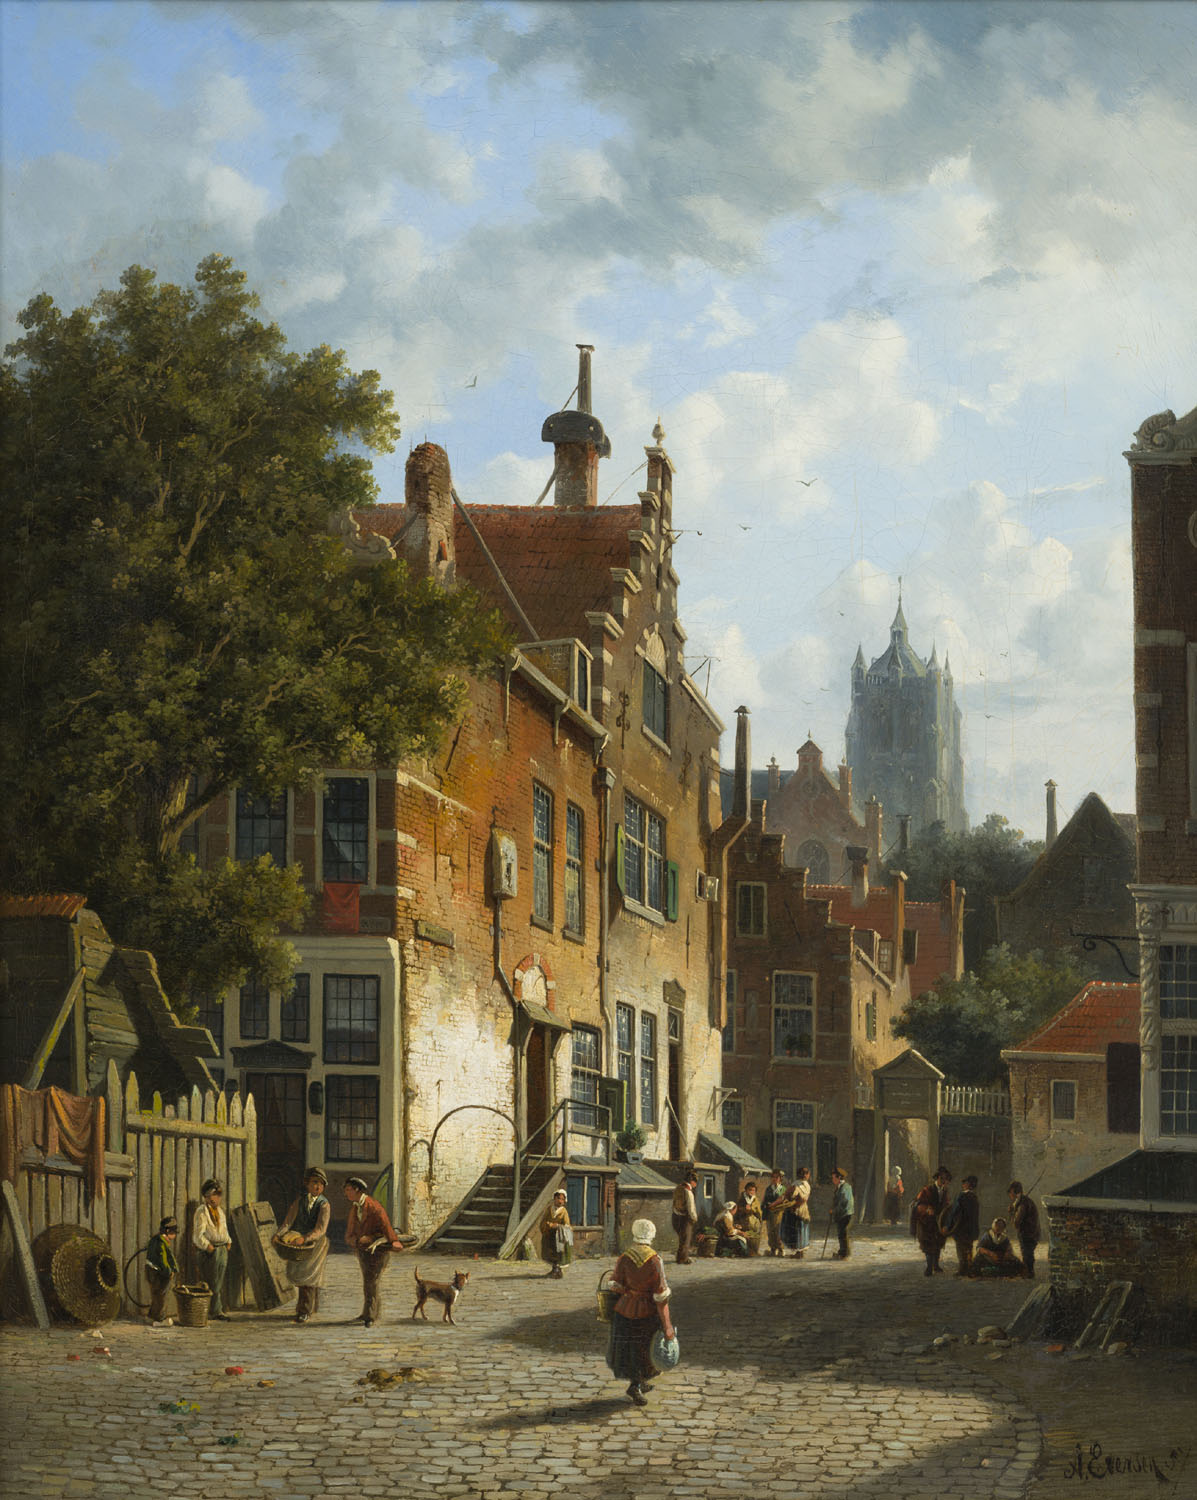 Adrianus Eversen | Sunny Dutch town with many figures, a church beyond | Kunsthandel Bies | Bies Gallery